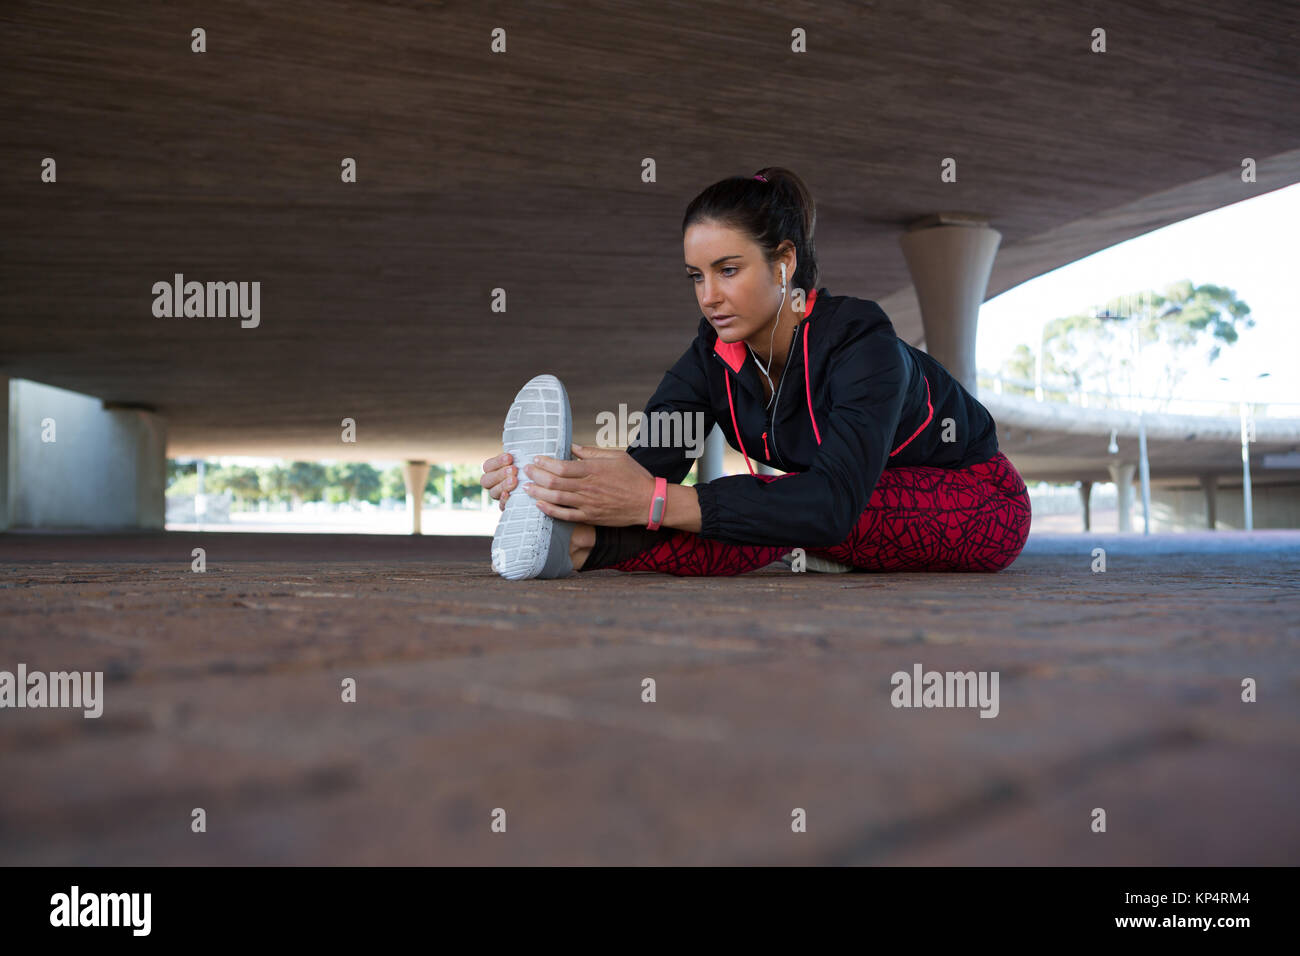 Fit woman doing warm up under bridge - Stock Image